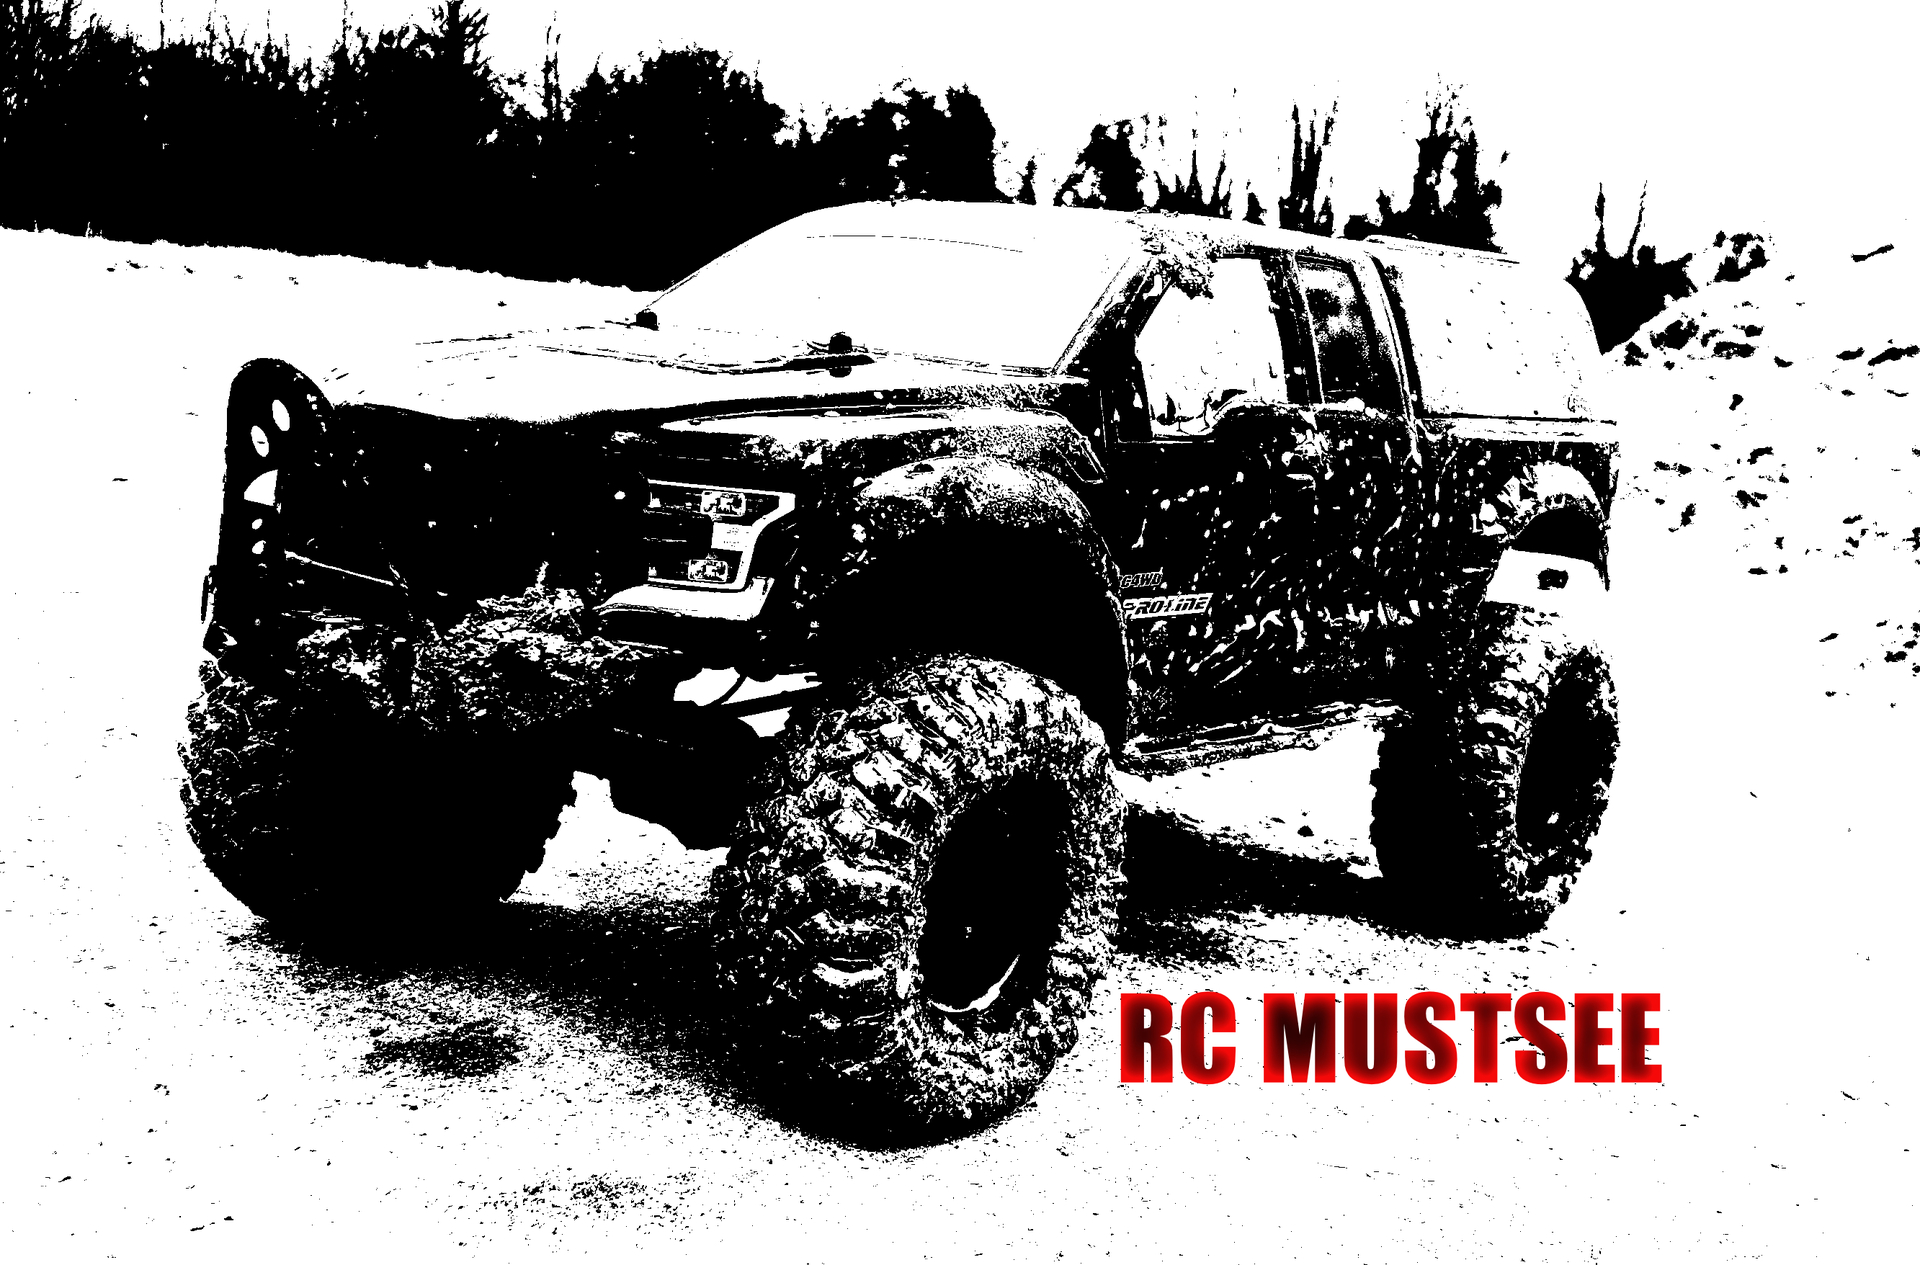 RC MUSTSEE & WALL R/C CLOTHING Store